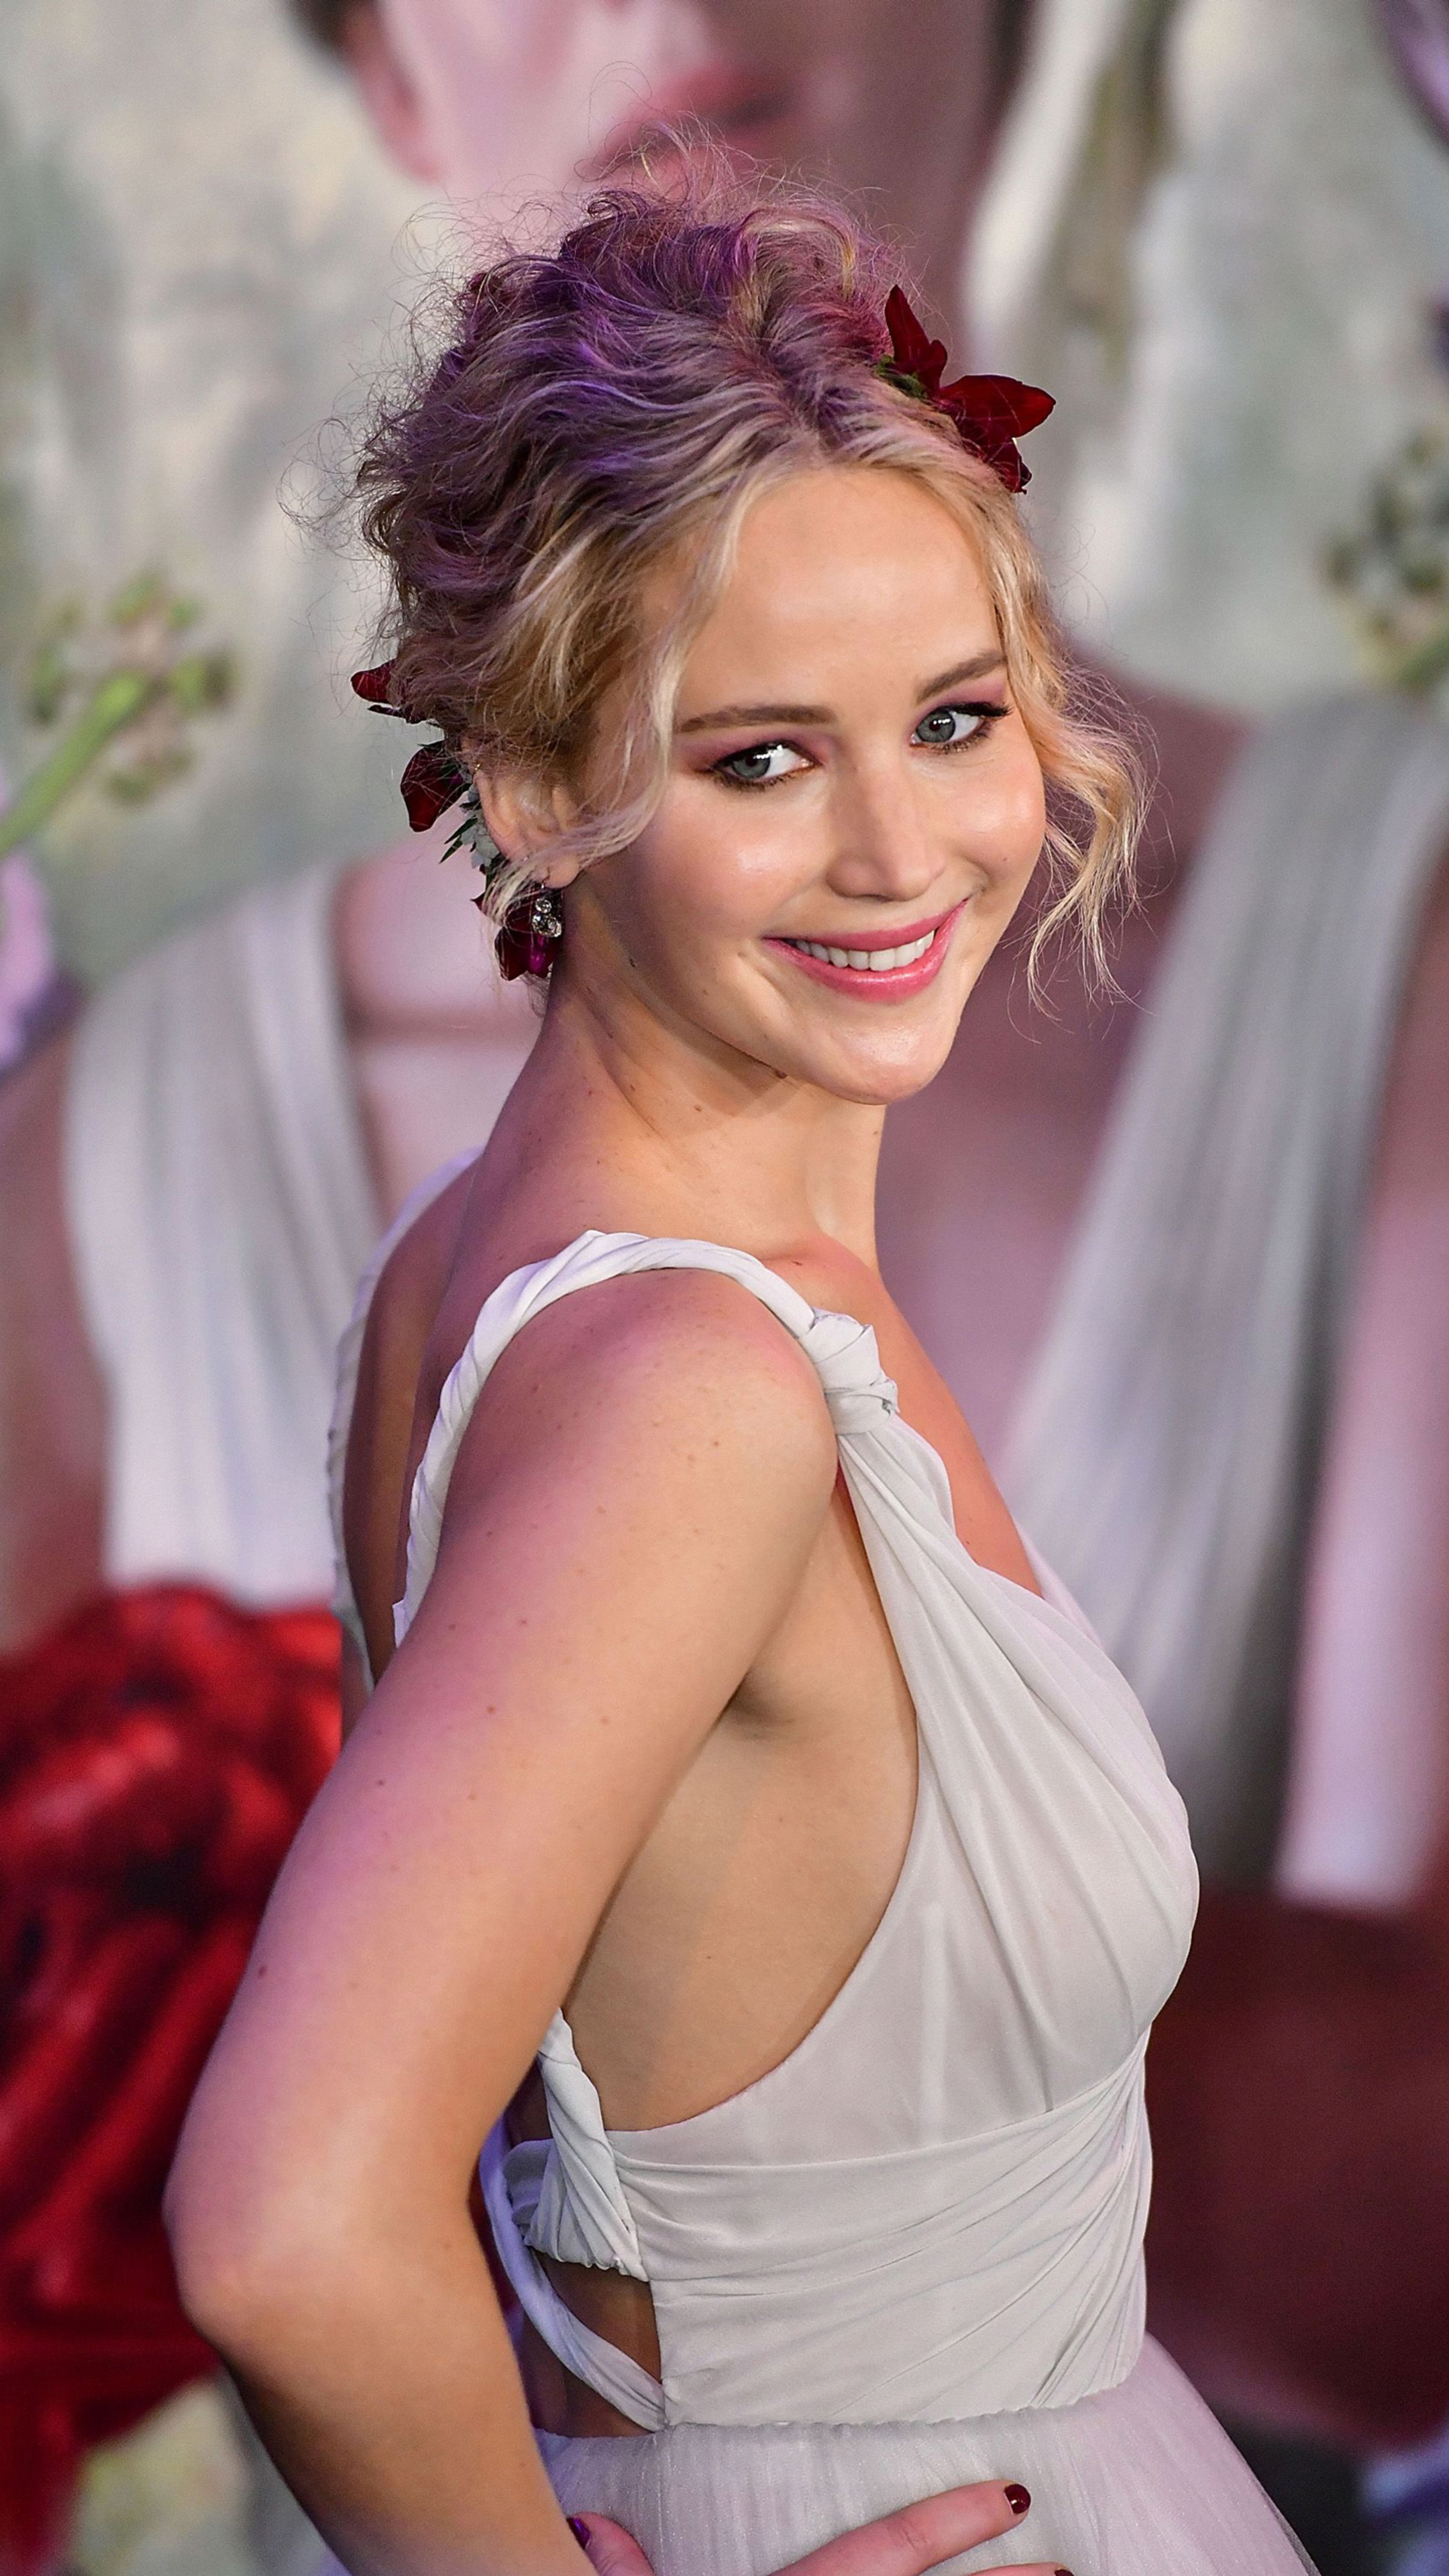 jennifer-lawrence-smiling-2018-z9.jpg